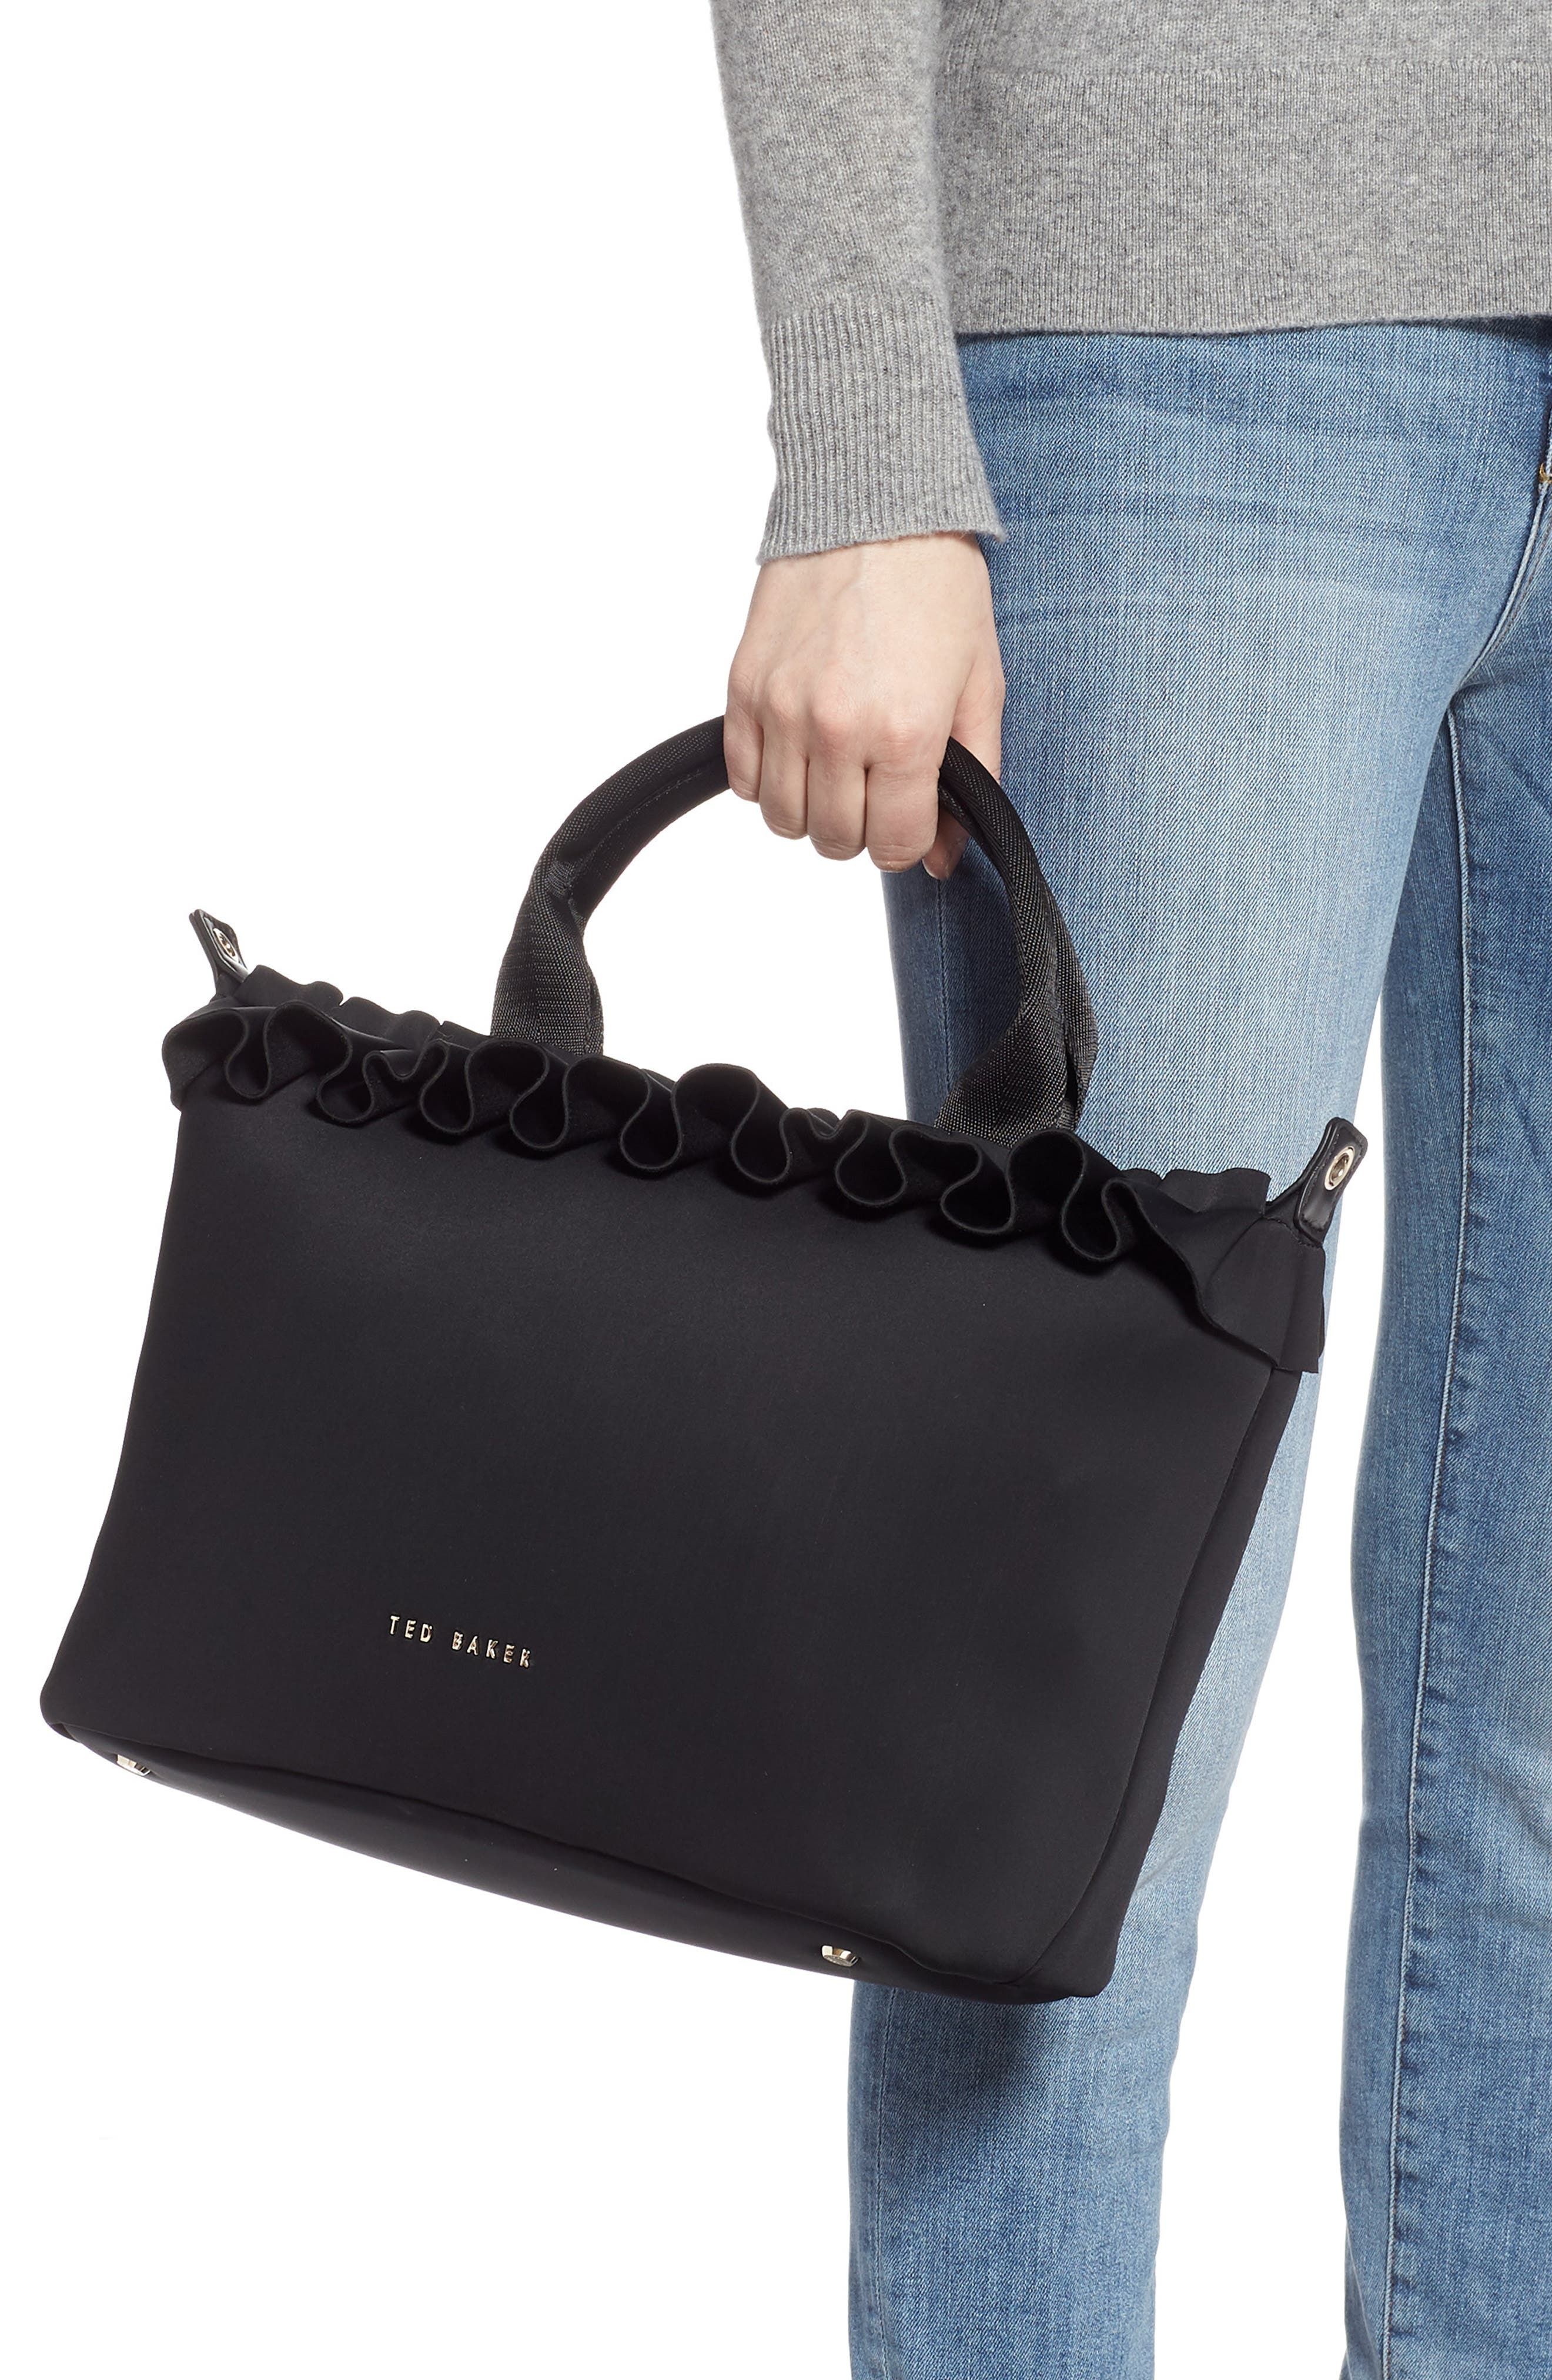 TED BAKER LONDON, Ryllee Ruffle Tote, Alternate thumbnail 2, color, 001